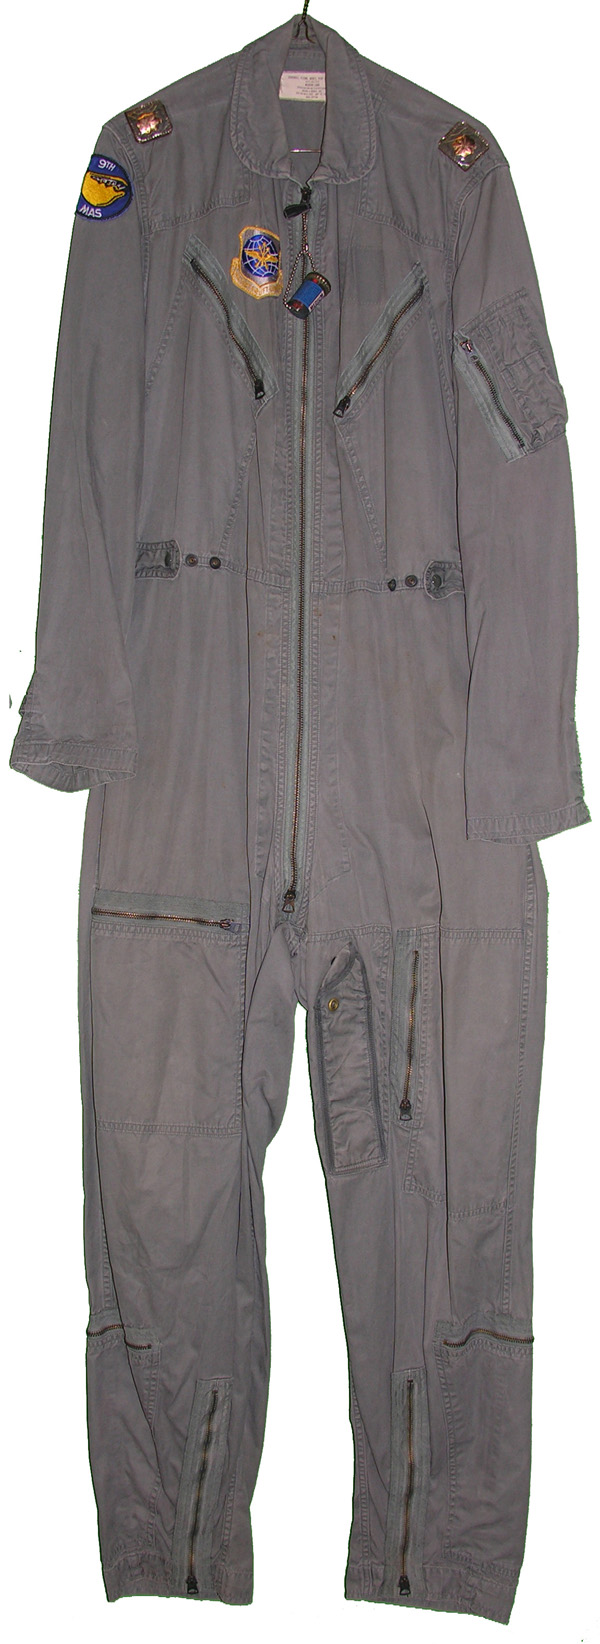 USAF K-2B Flight Suit with patches